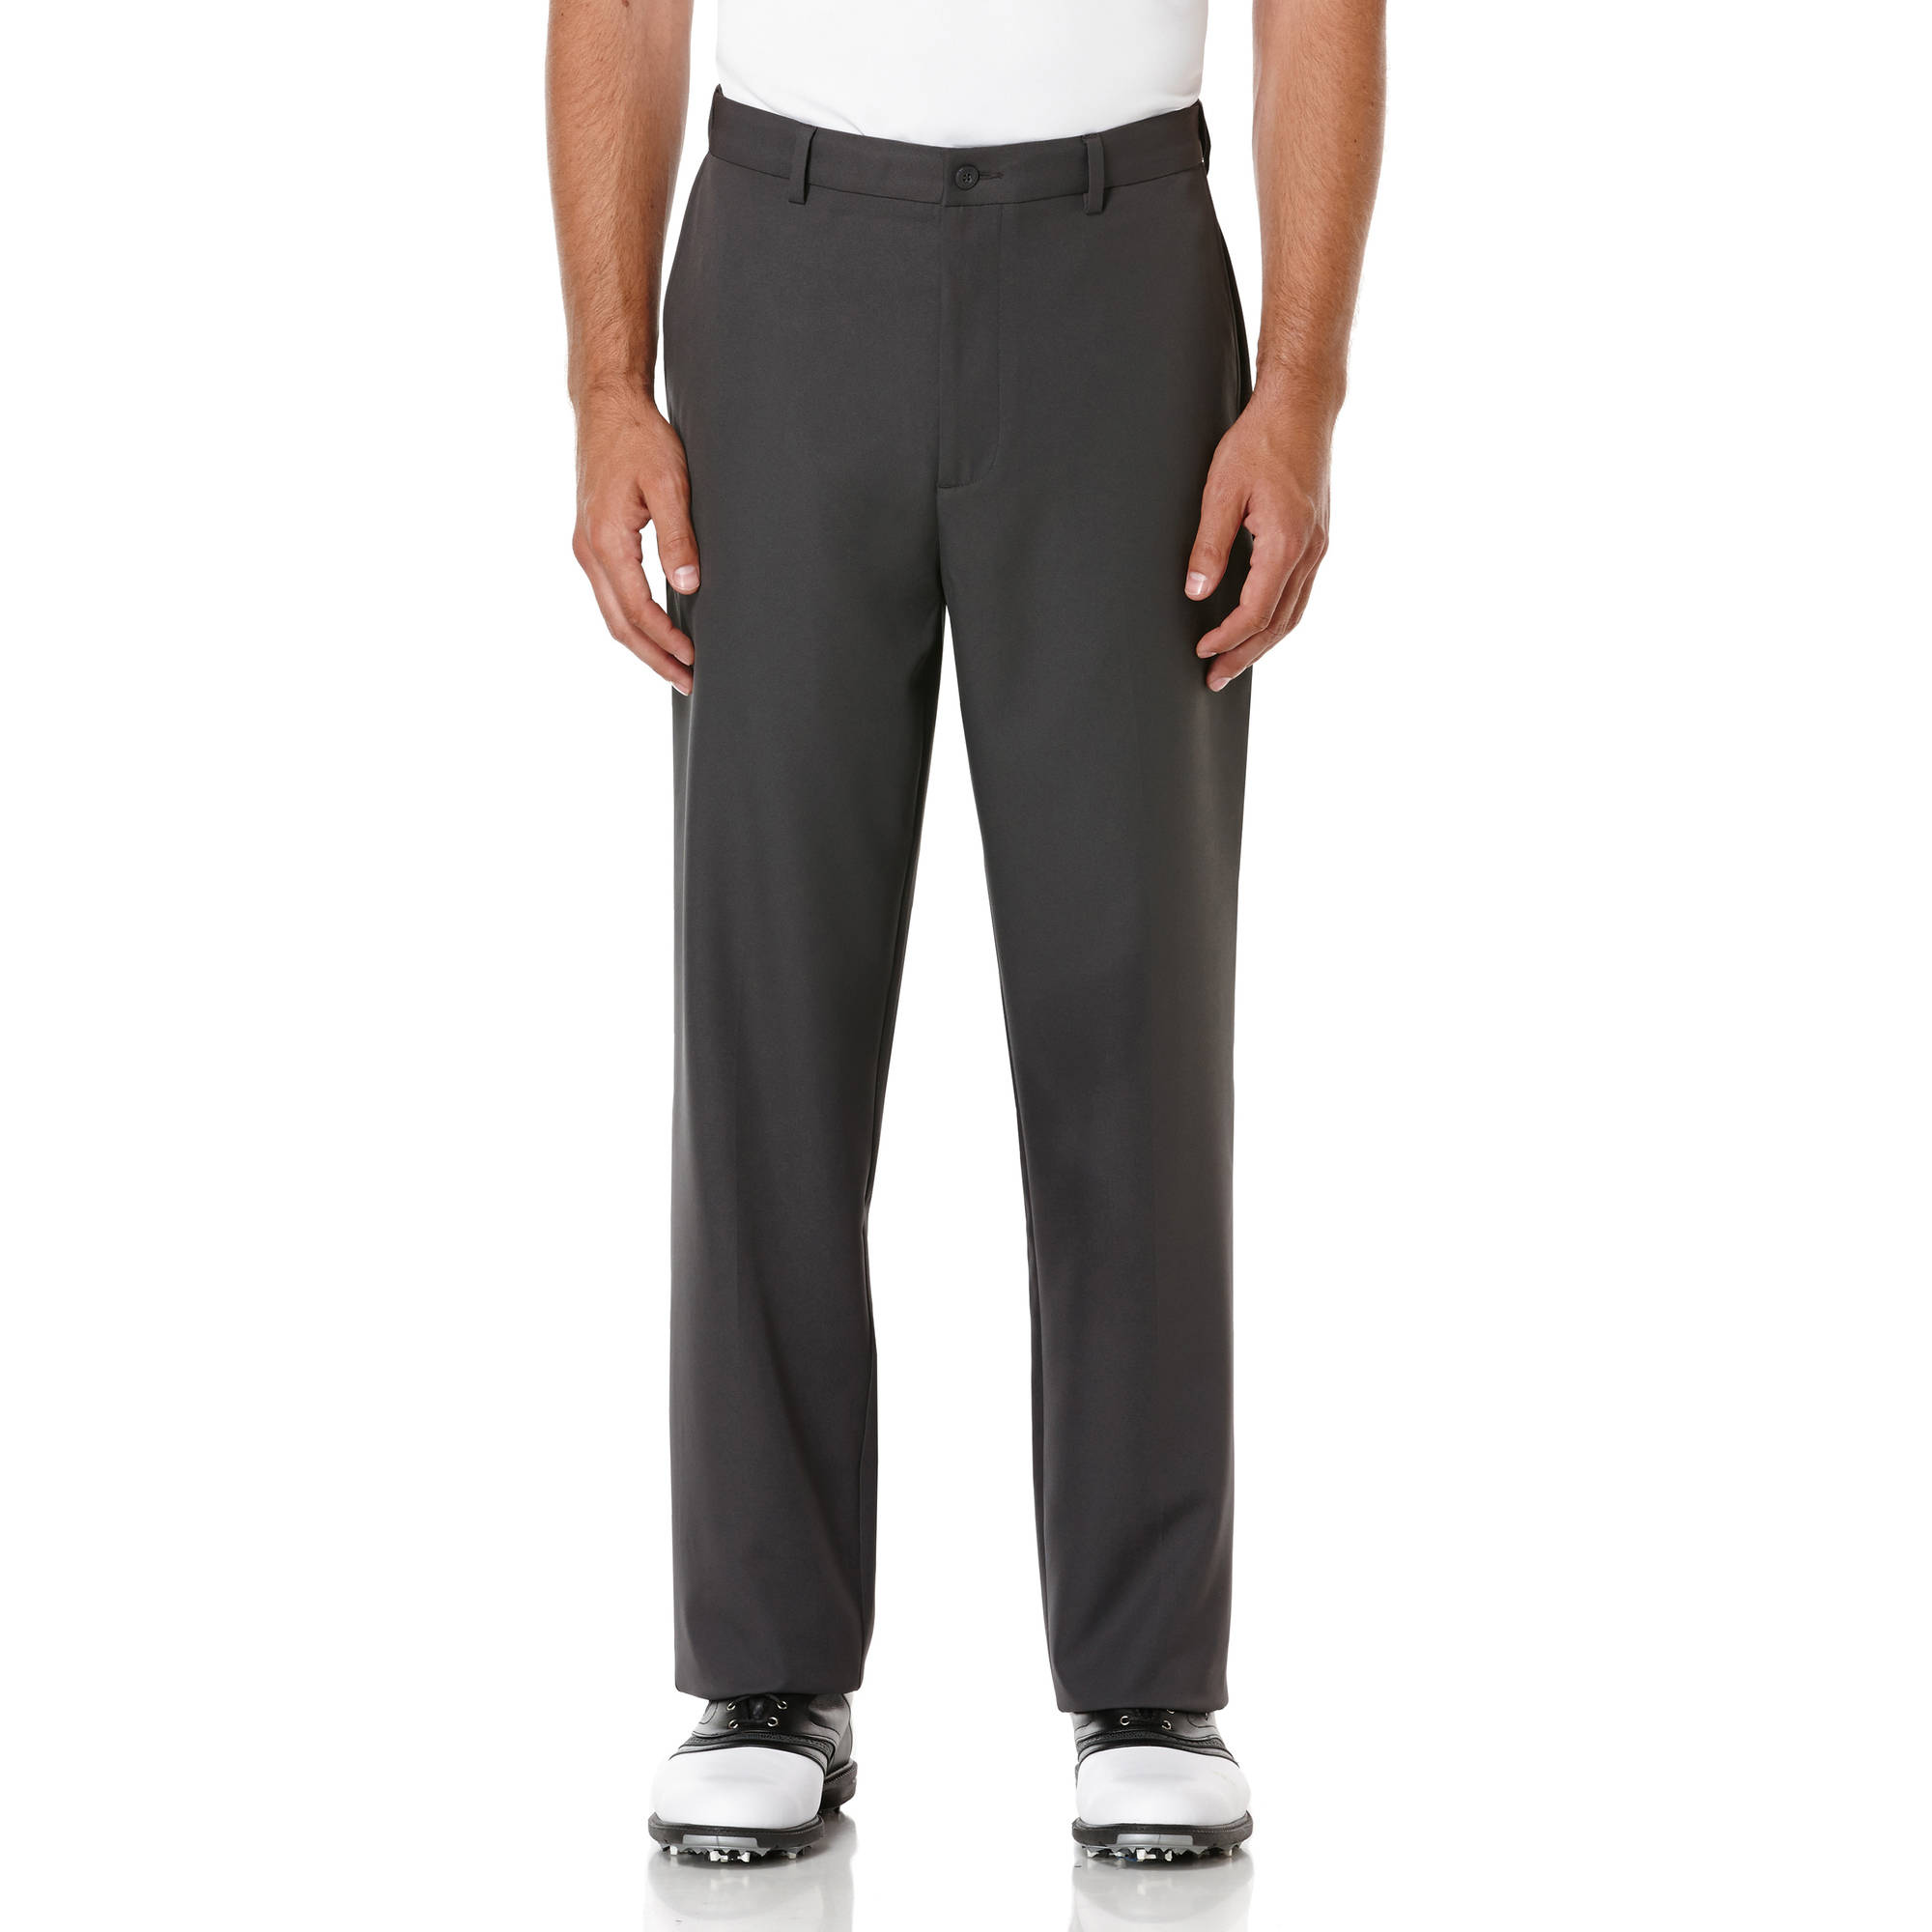 Men's Golf Performance Flat Front Expandable Waistband Pant by Generic